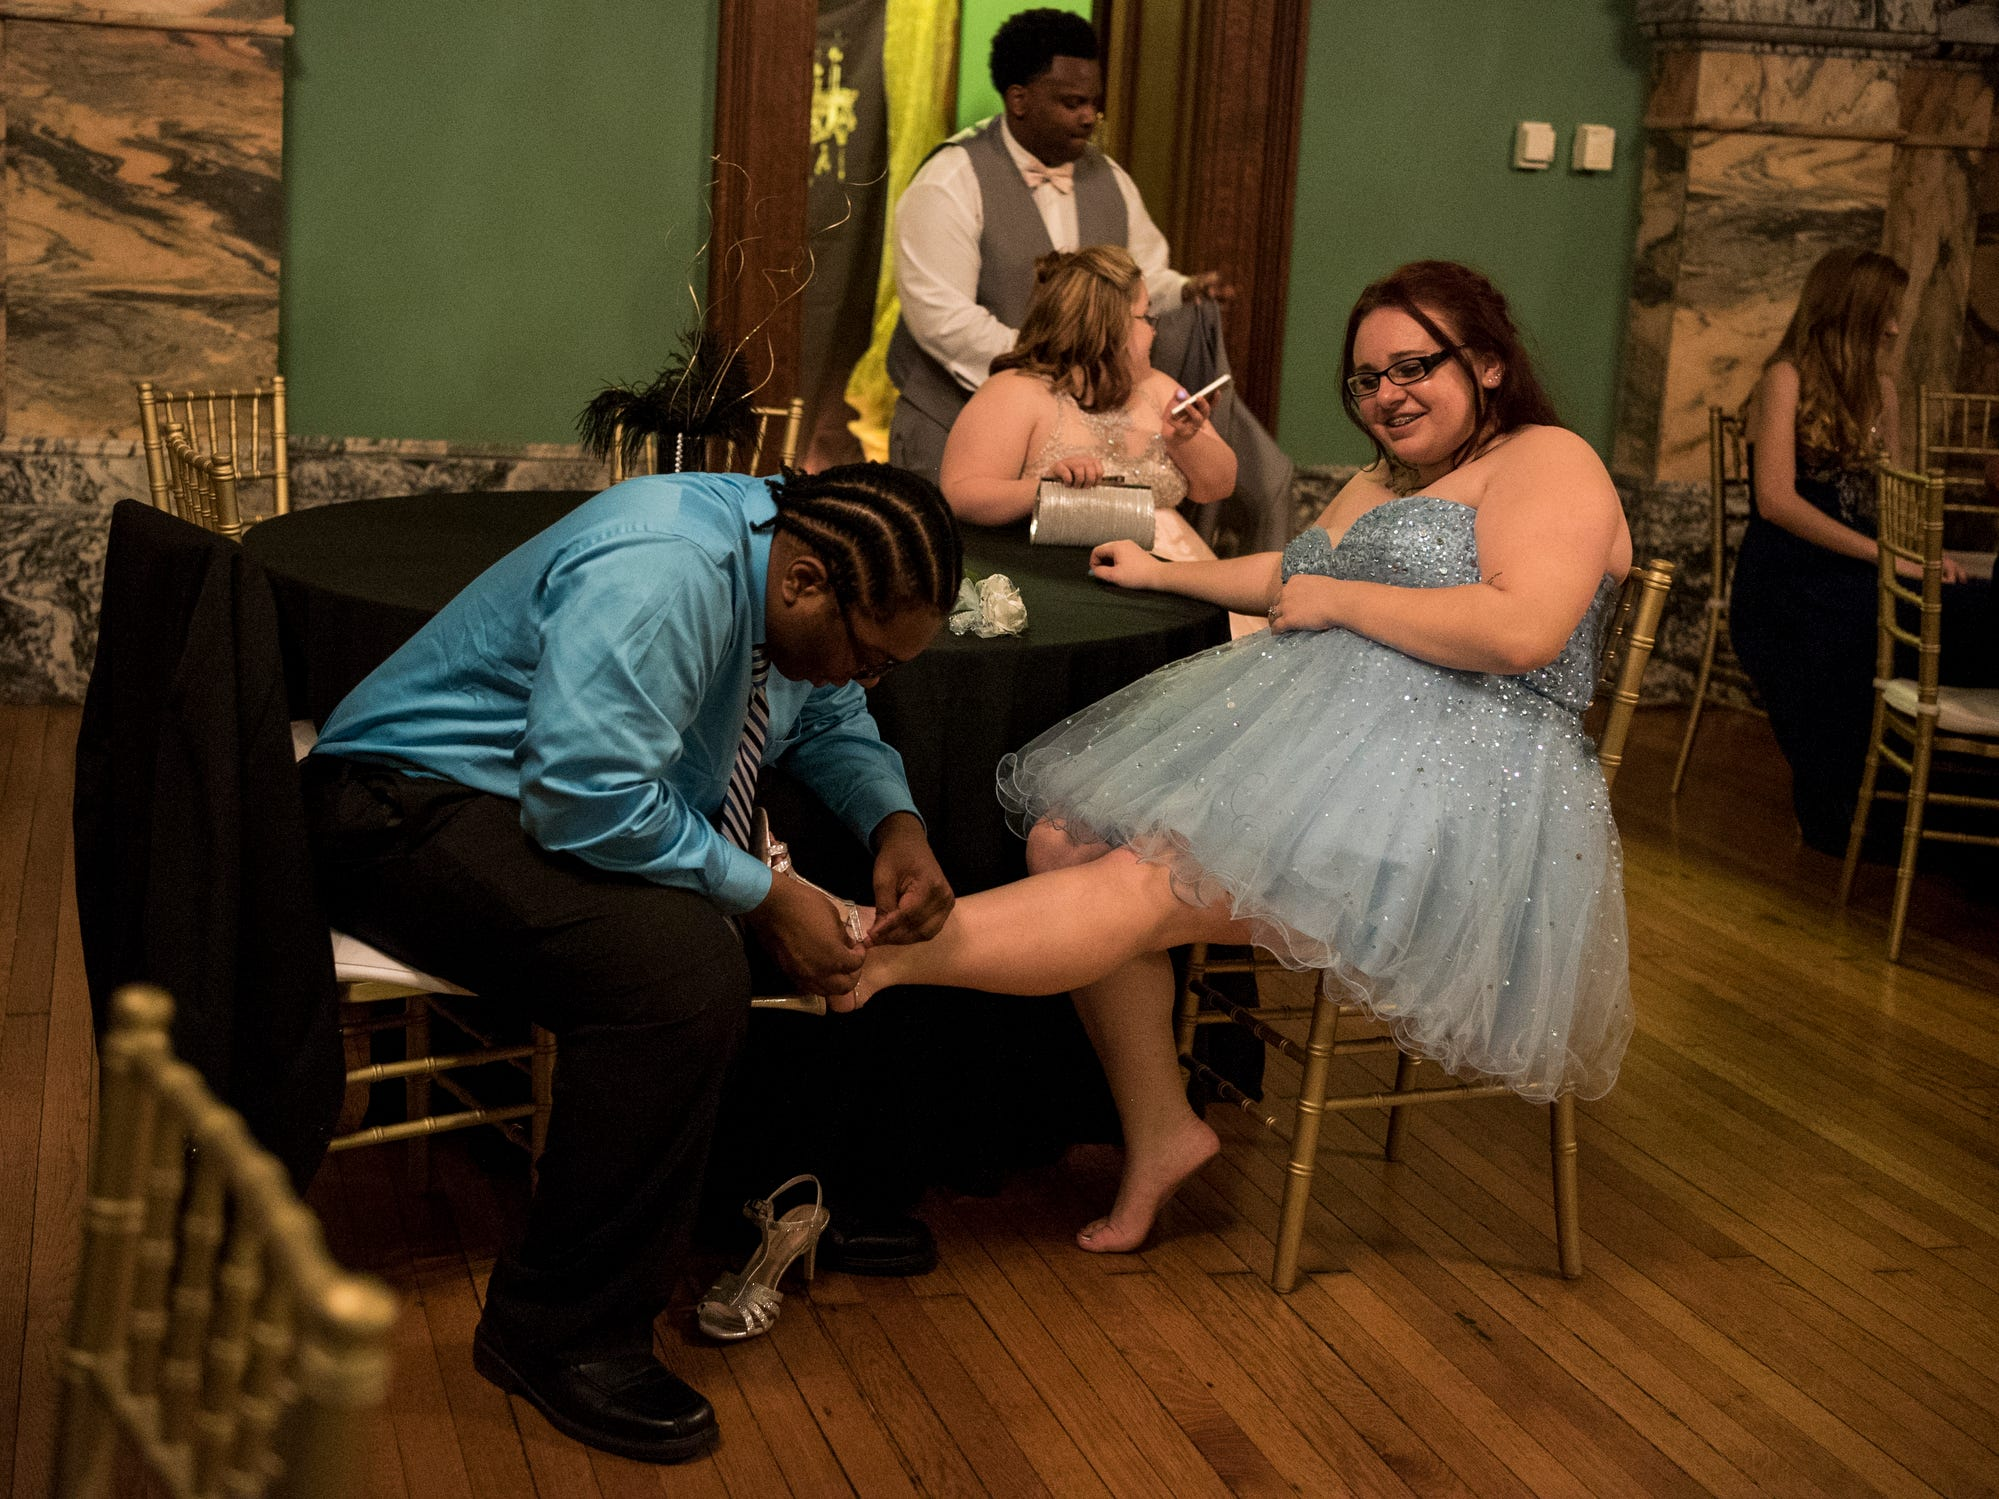 Sydney Mobley helps his prom date Majestica Weatherford put her shoes back on after a night full of dancing with their friends Cassidy Houston and Ethan Banks, both back, at the Old Vanderburgh County Courthouse in downtown Evansville, Ind., Saturday, April 6, 2019.